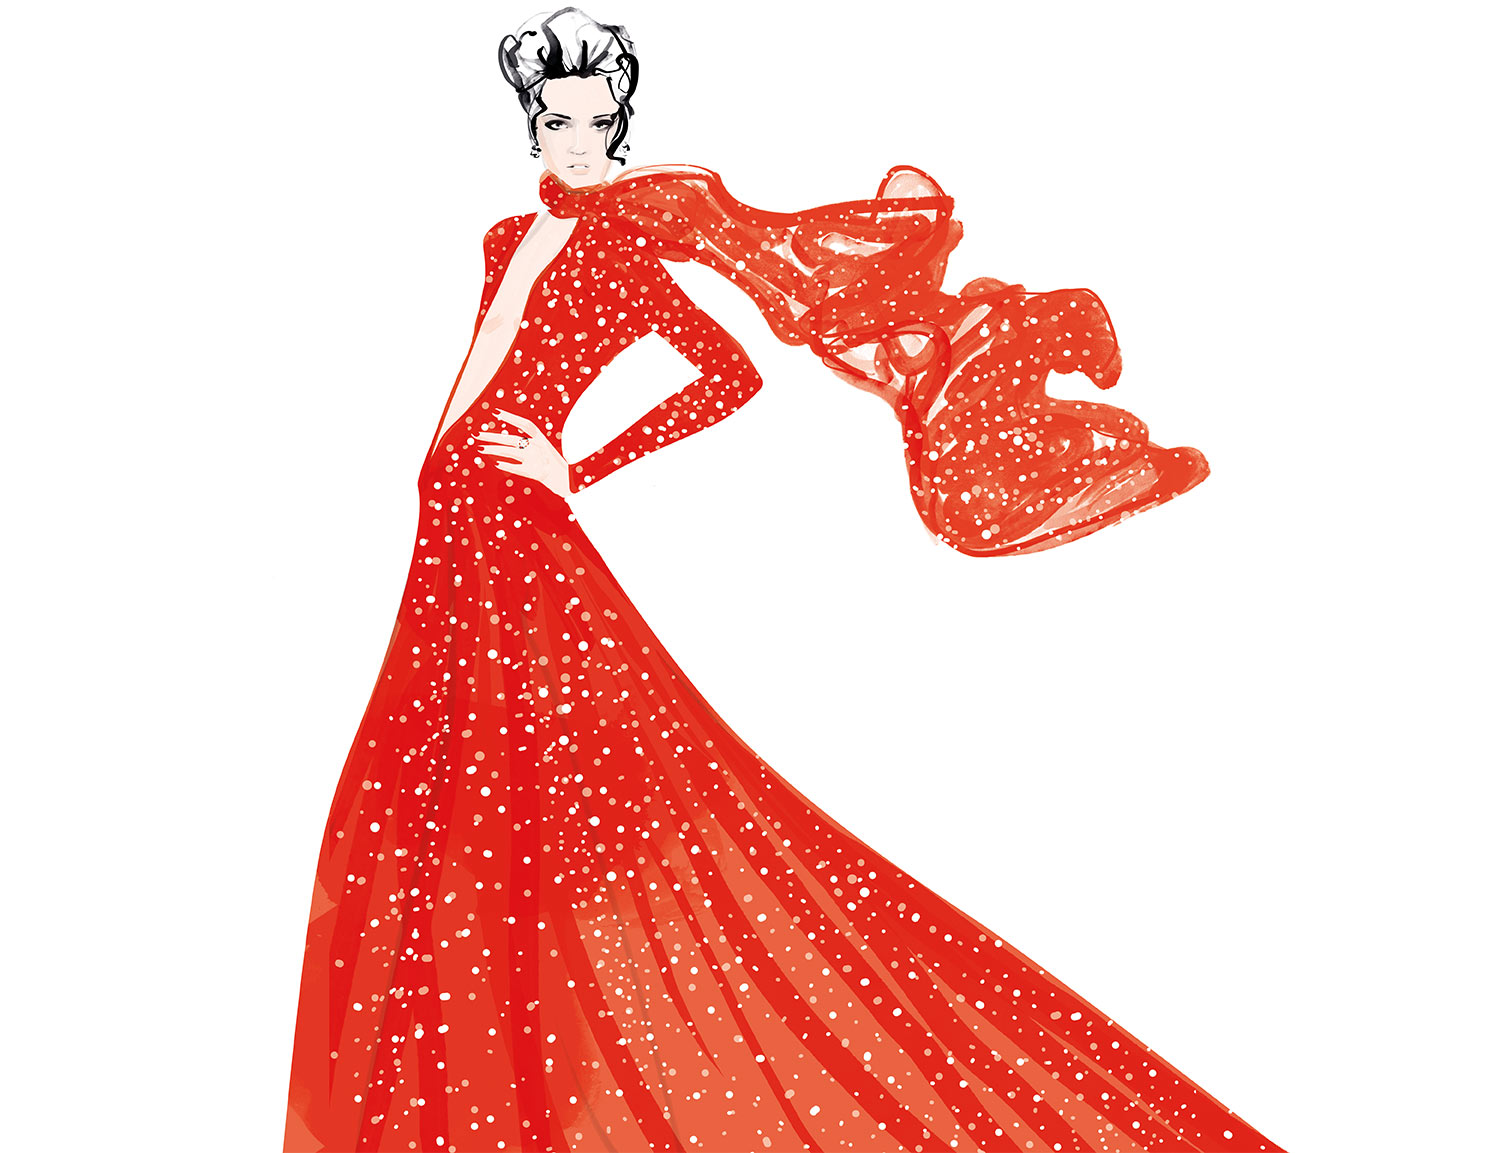 red dress fashion illustration